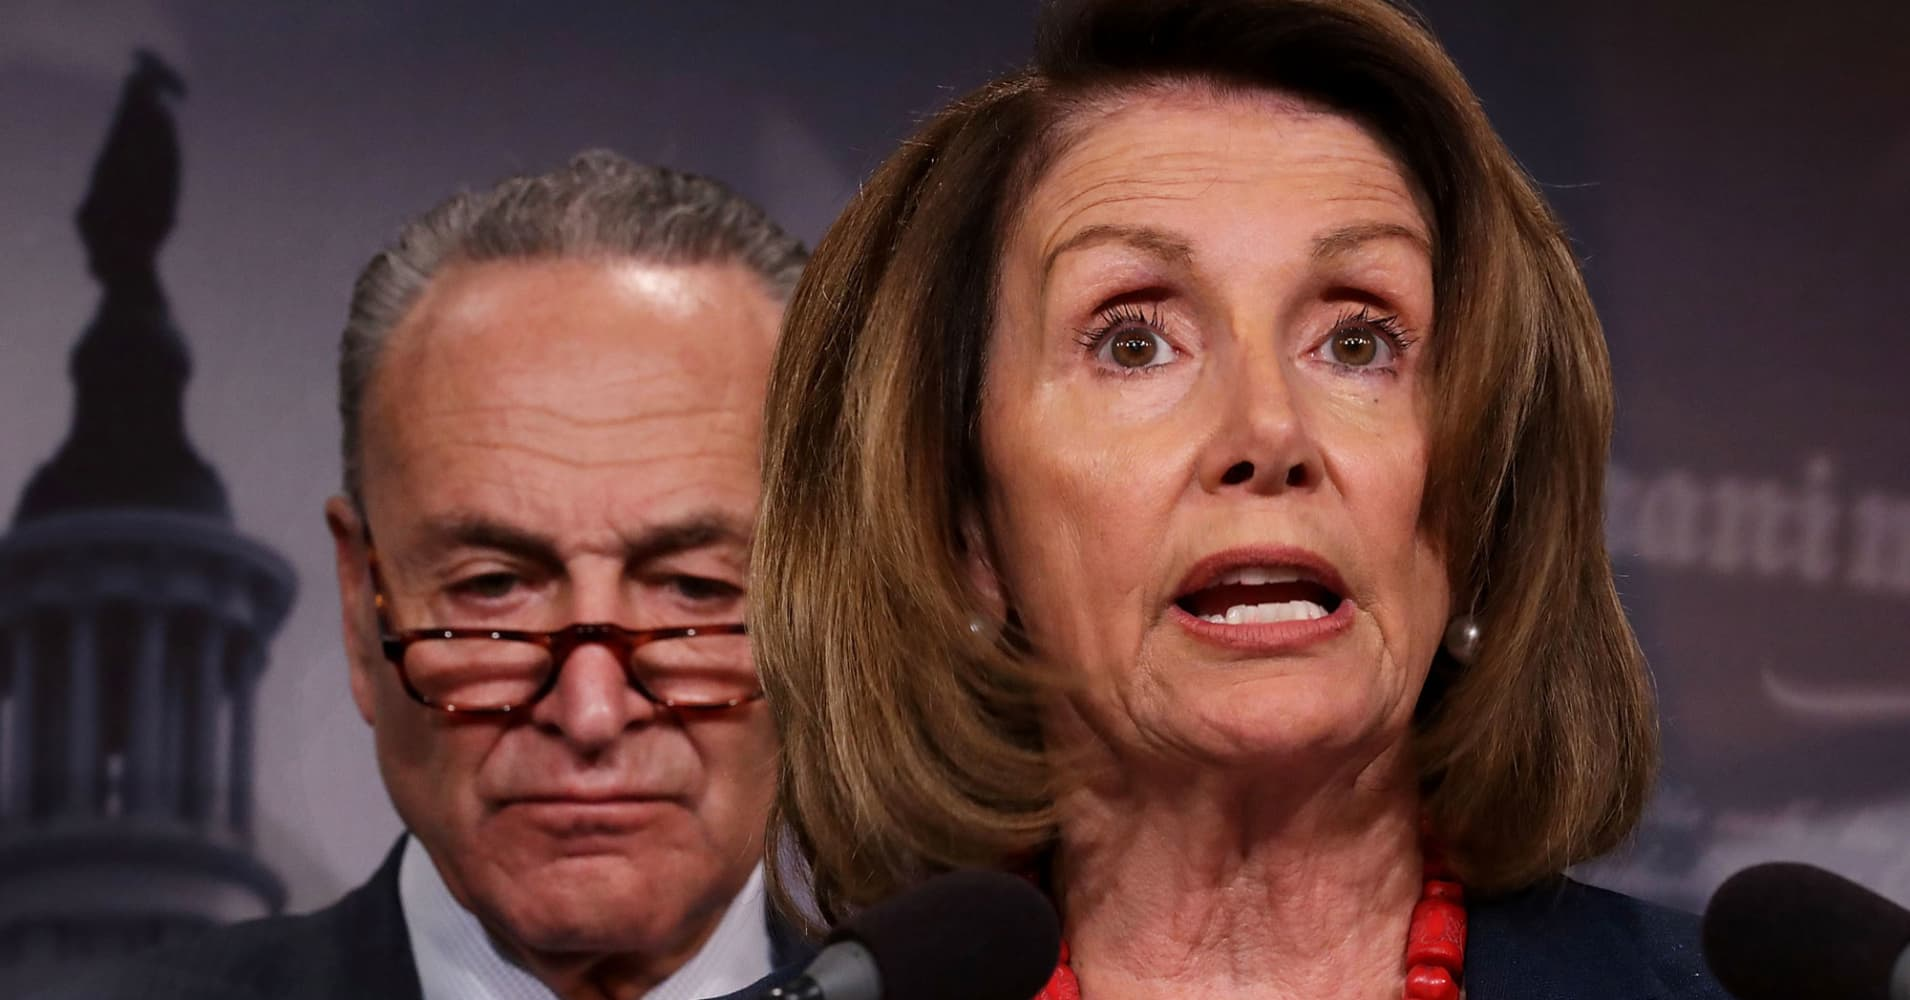 Pelosi, Schumer to respond to Trump's Oval Office border wall address